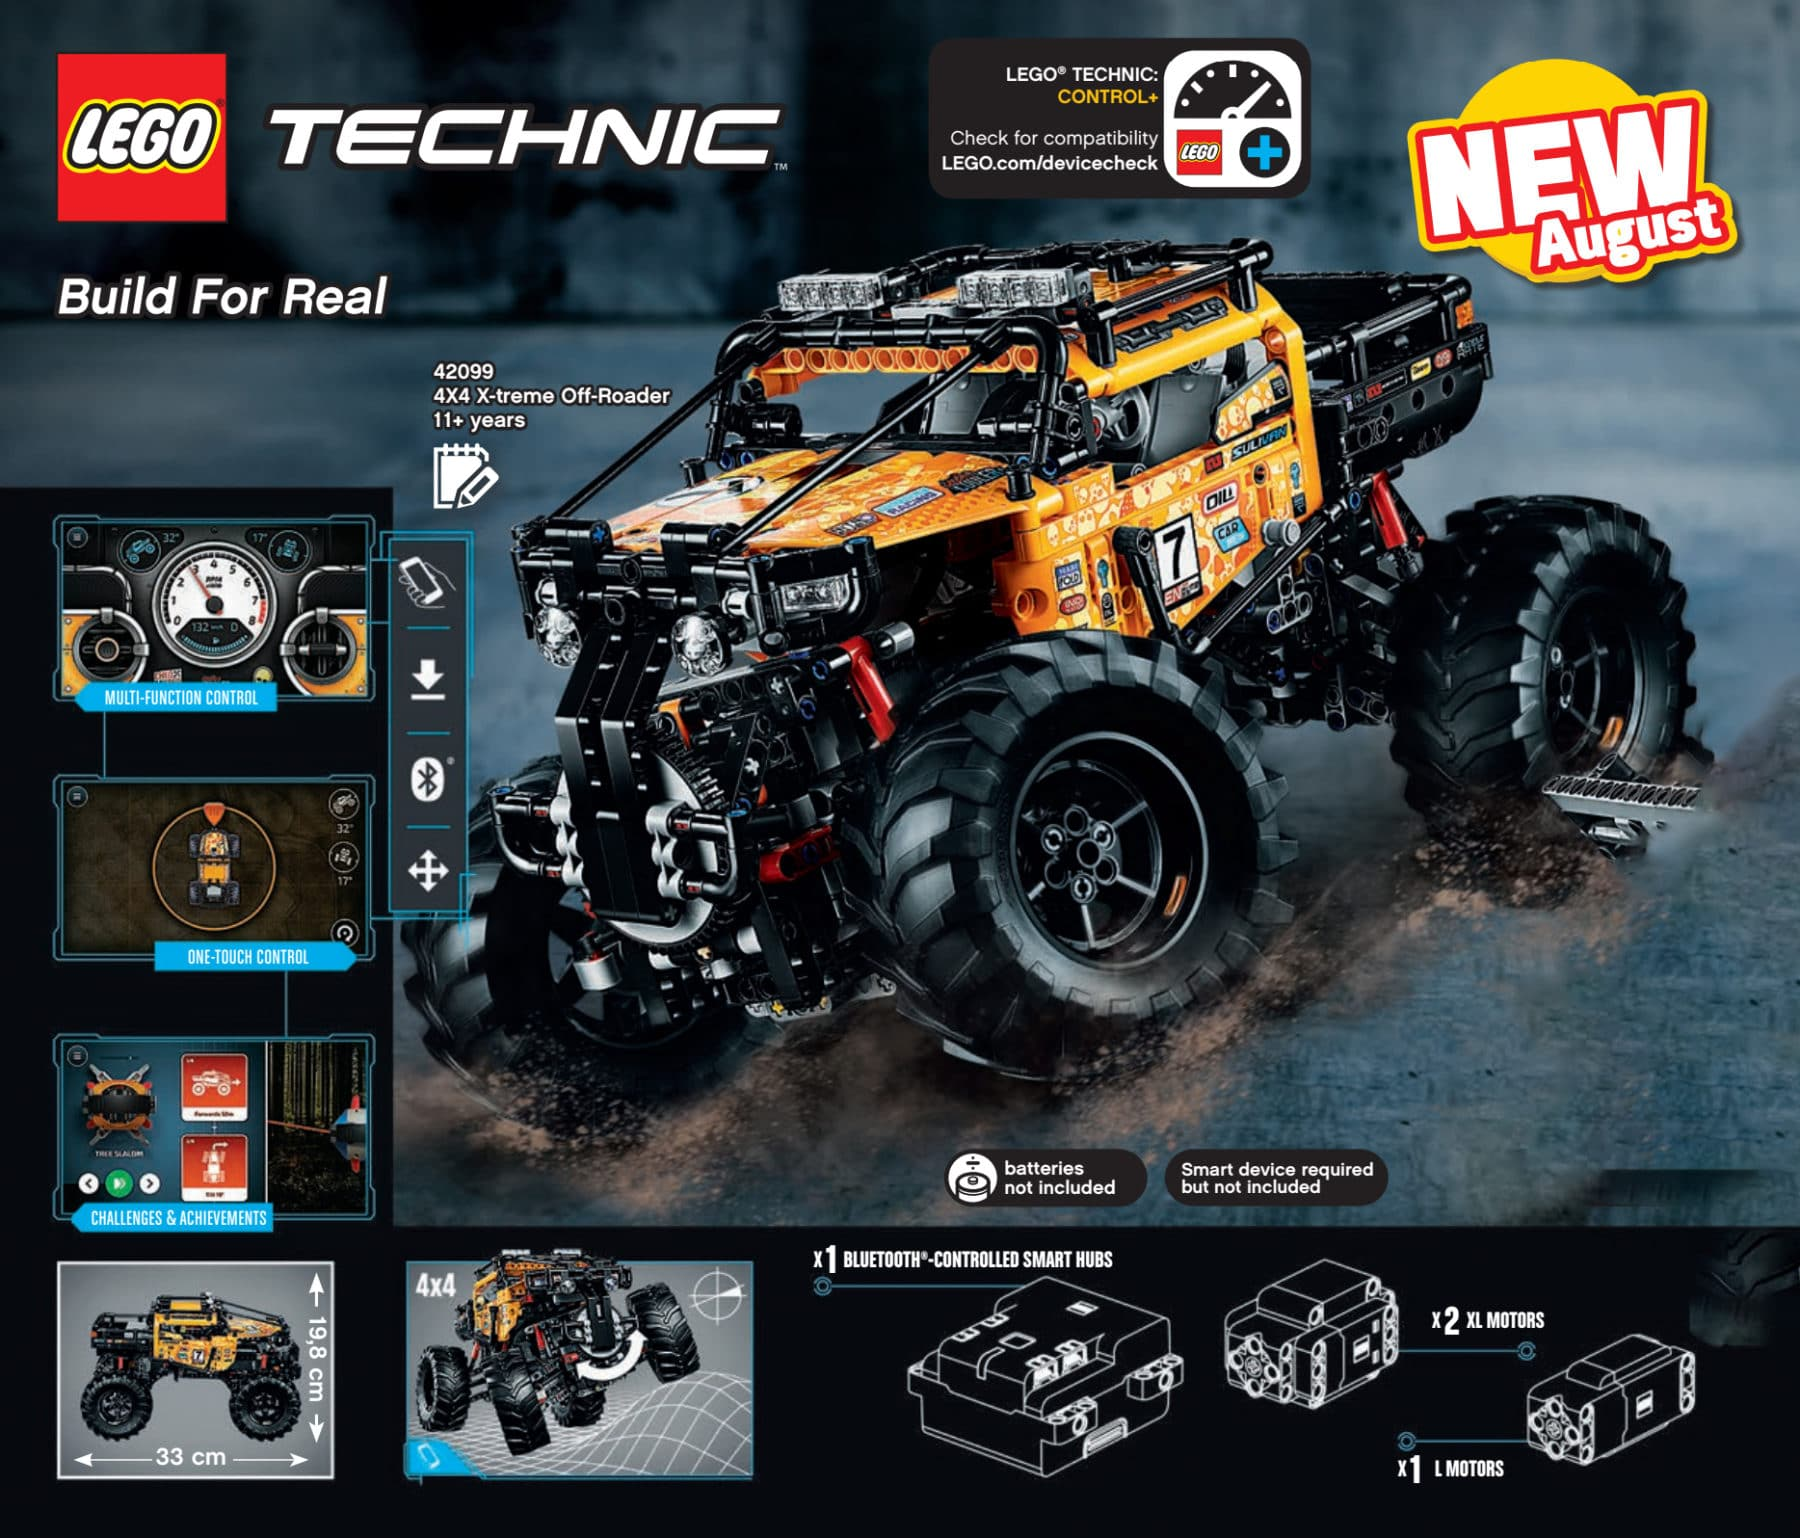 LEGO Technic 42099 X-treme Off-Roader